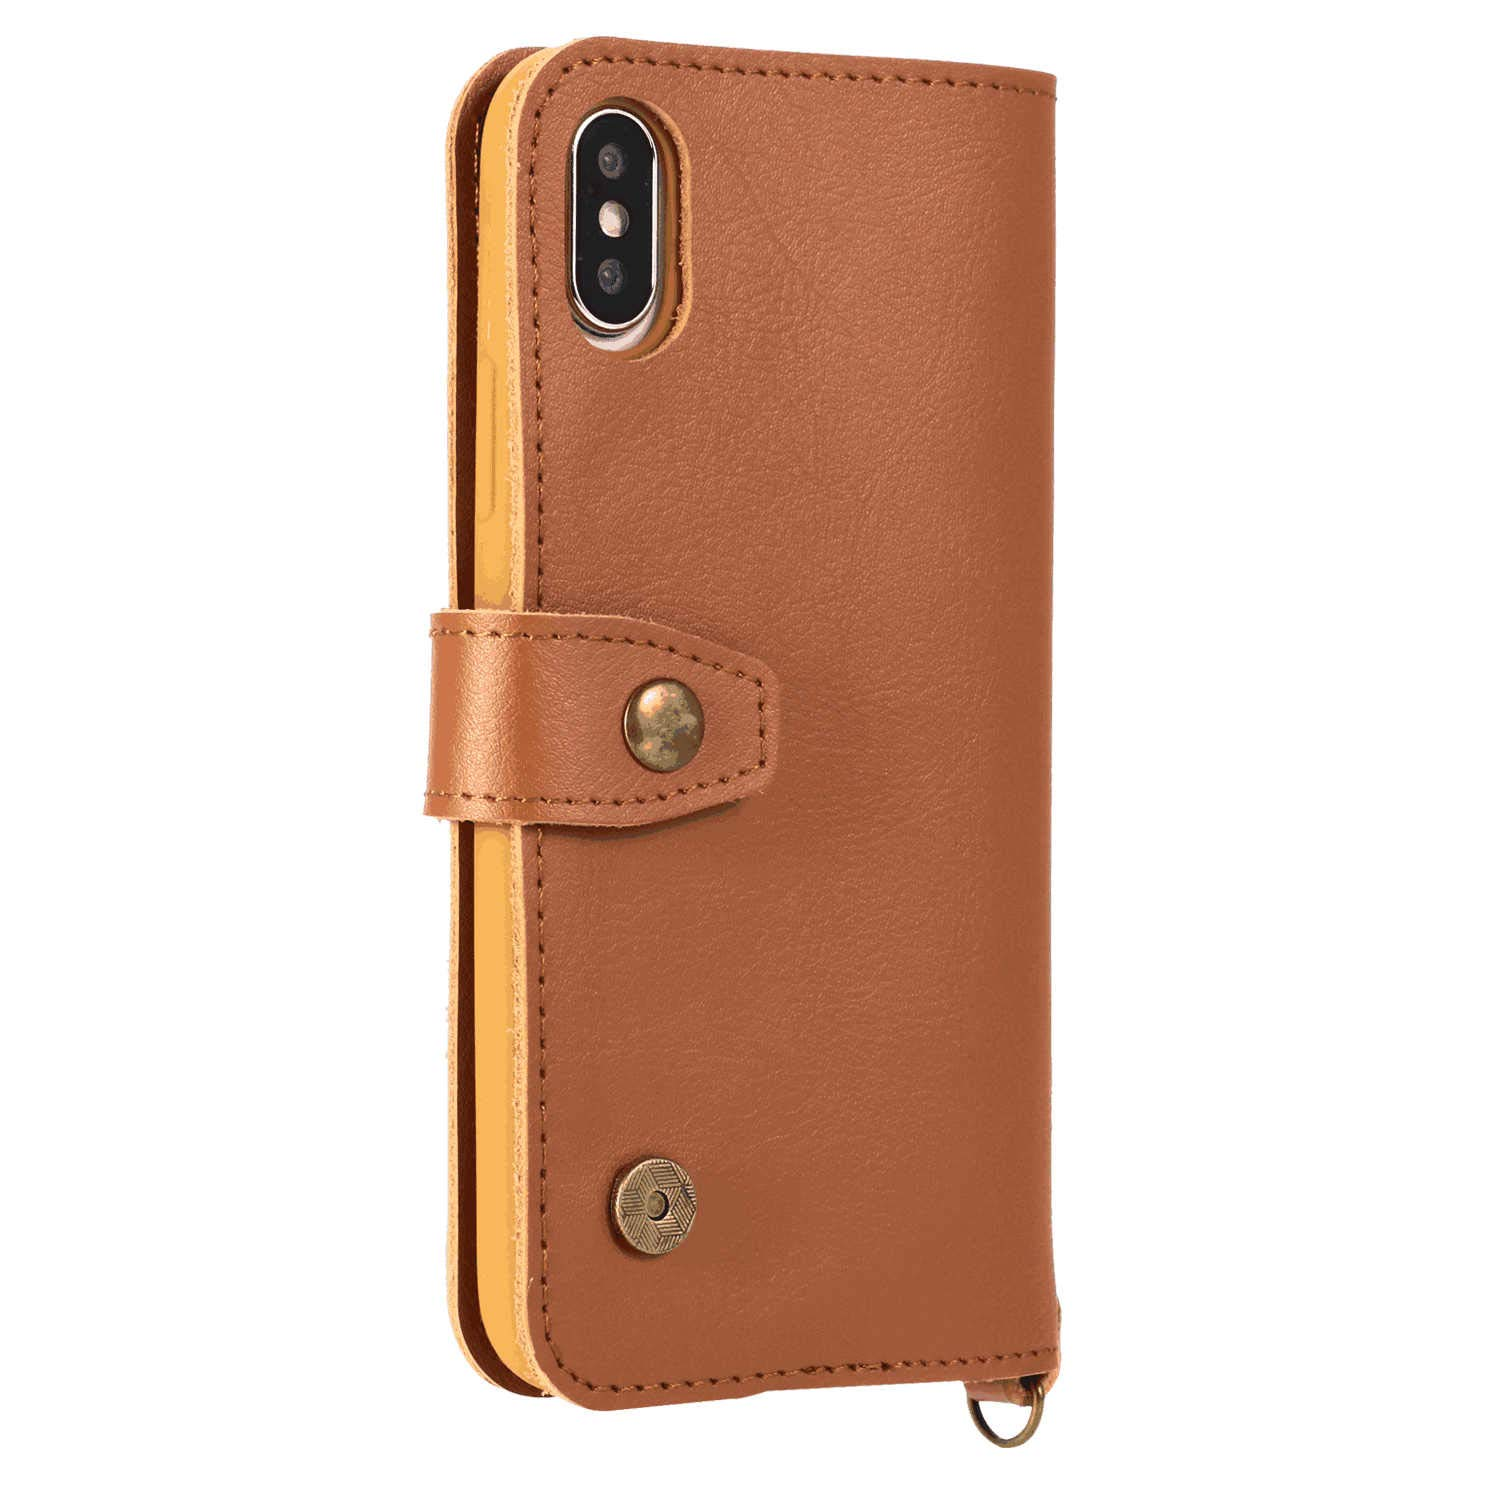 Samsung Galaxy S10E Flip Case Cover for Leather Extra-Protective Business Mobile Phone case Card Holders Kickstand Flip Cover